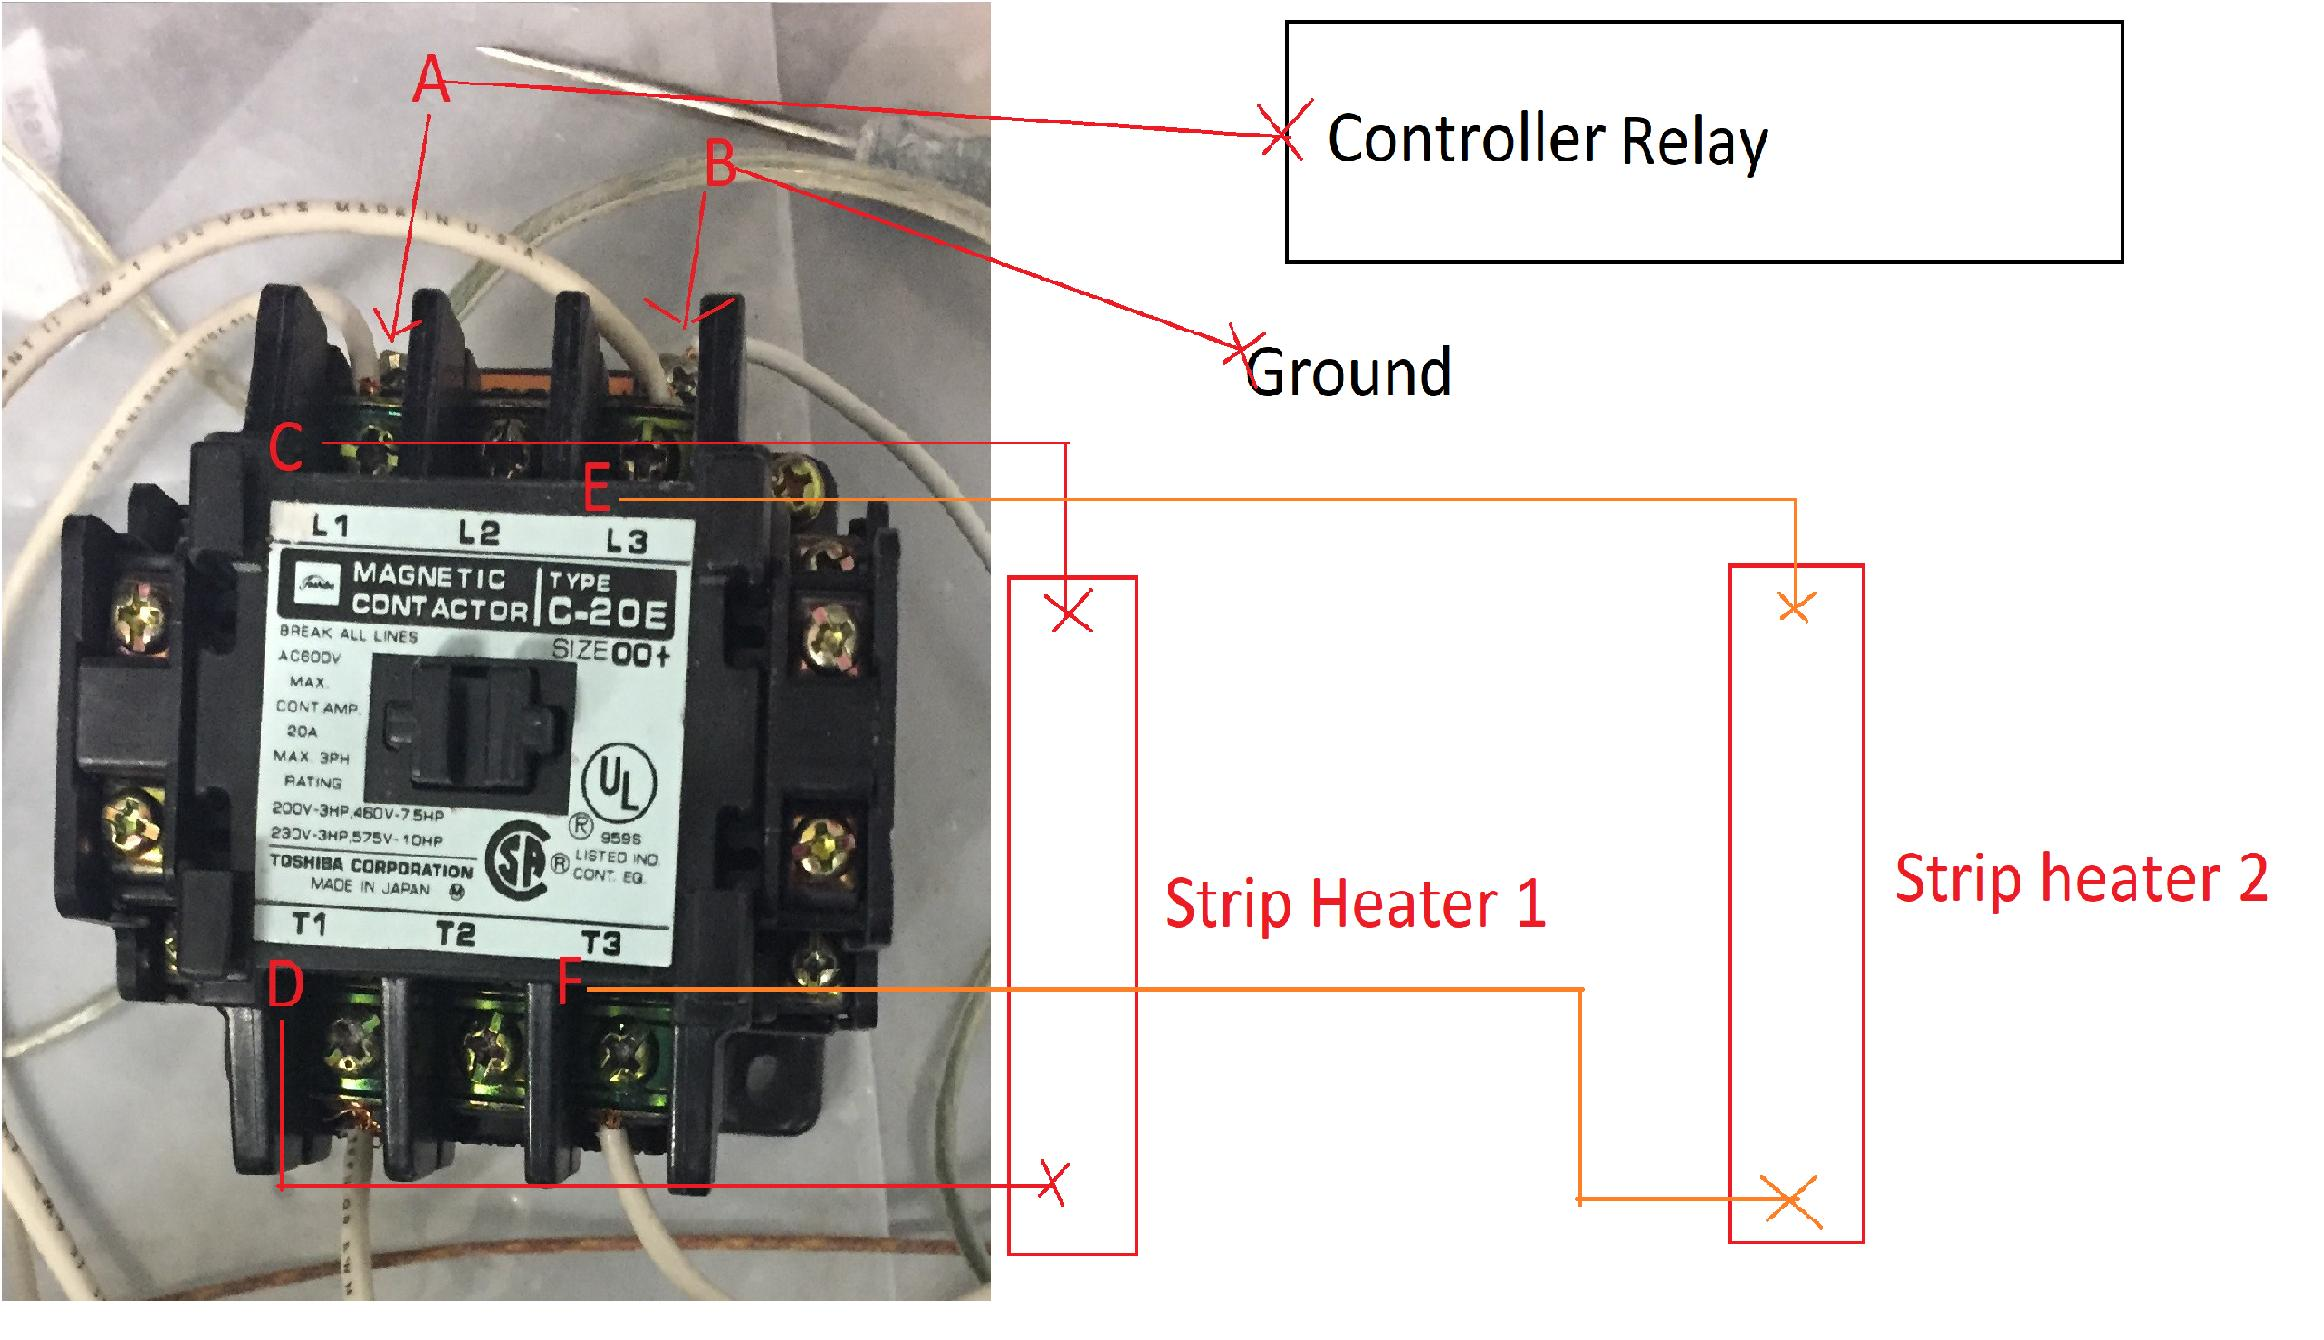 Bg 5640  Magnetic Contactor 1 Pole Relay Wiring Free Diagram